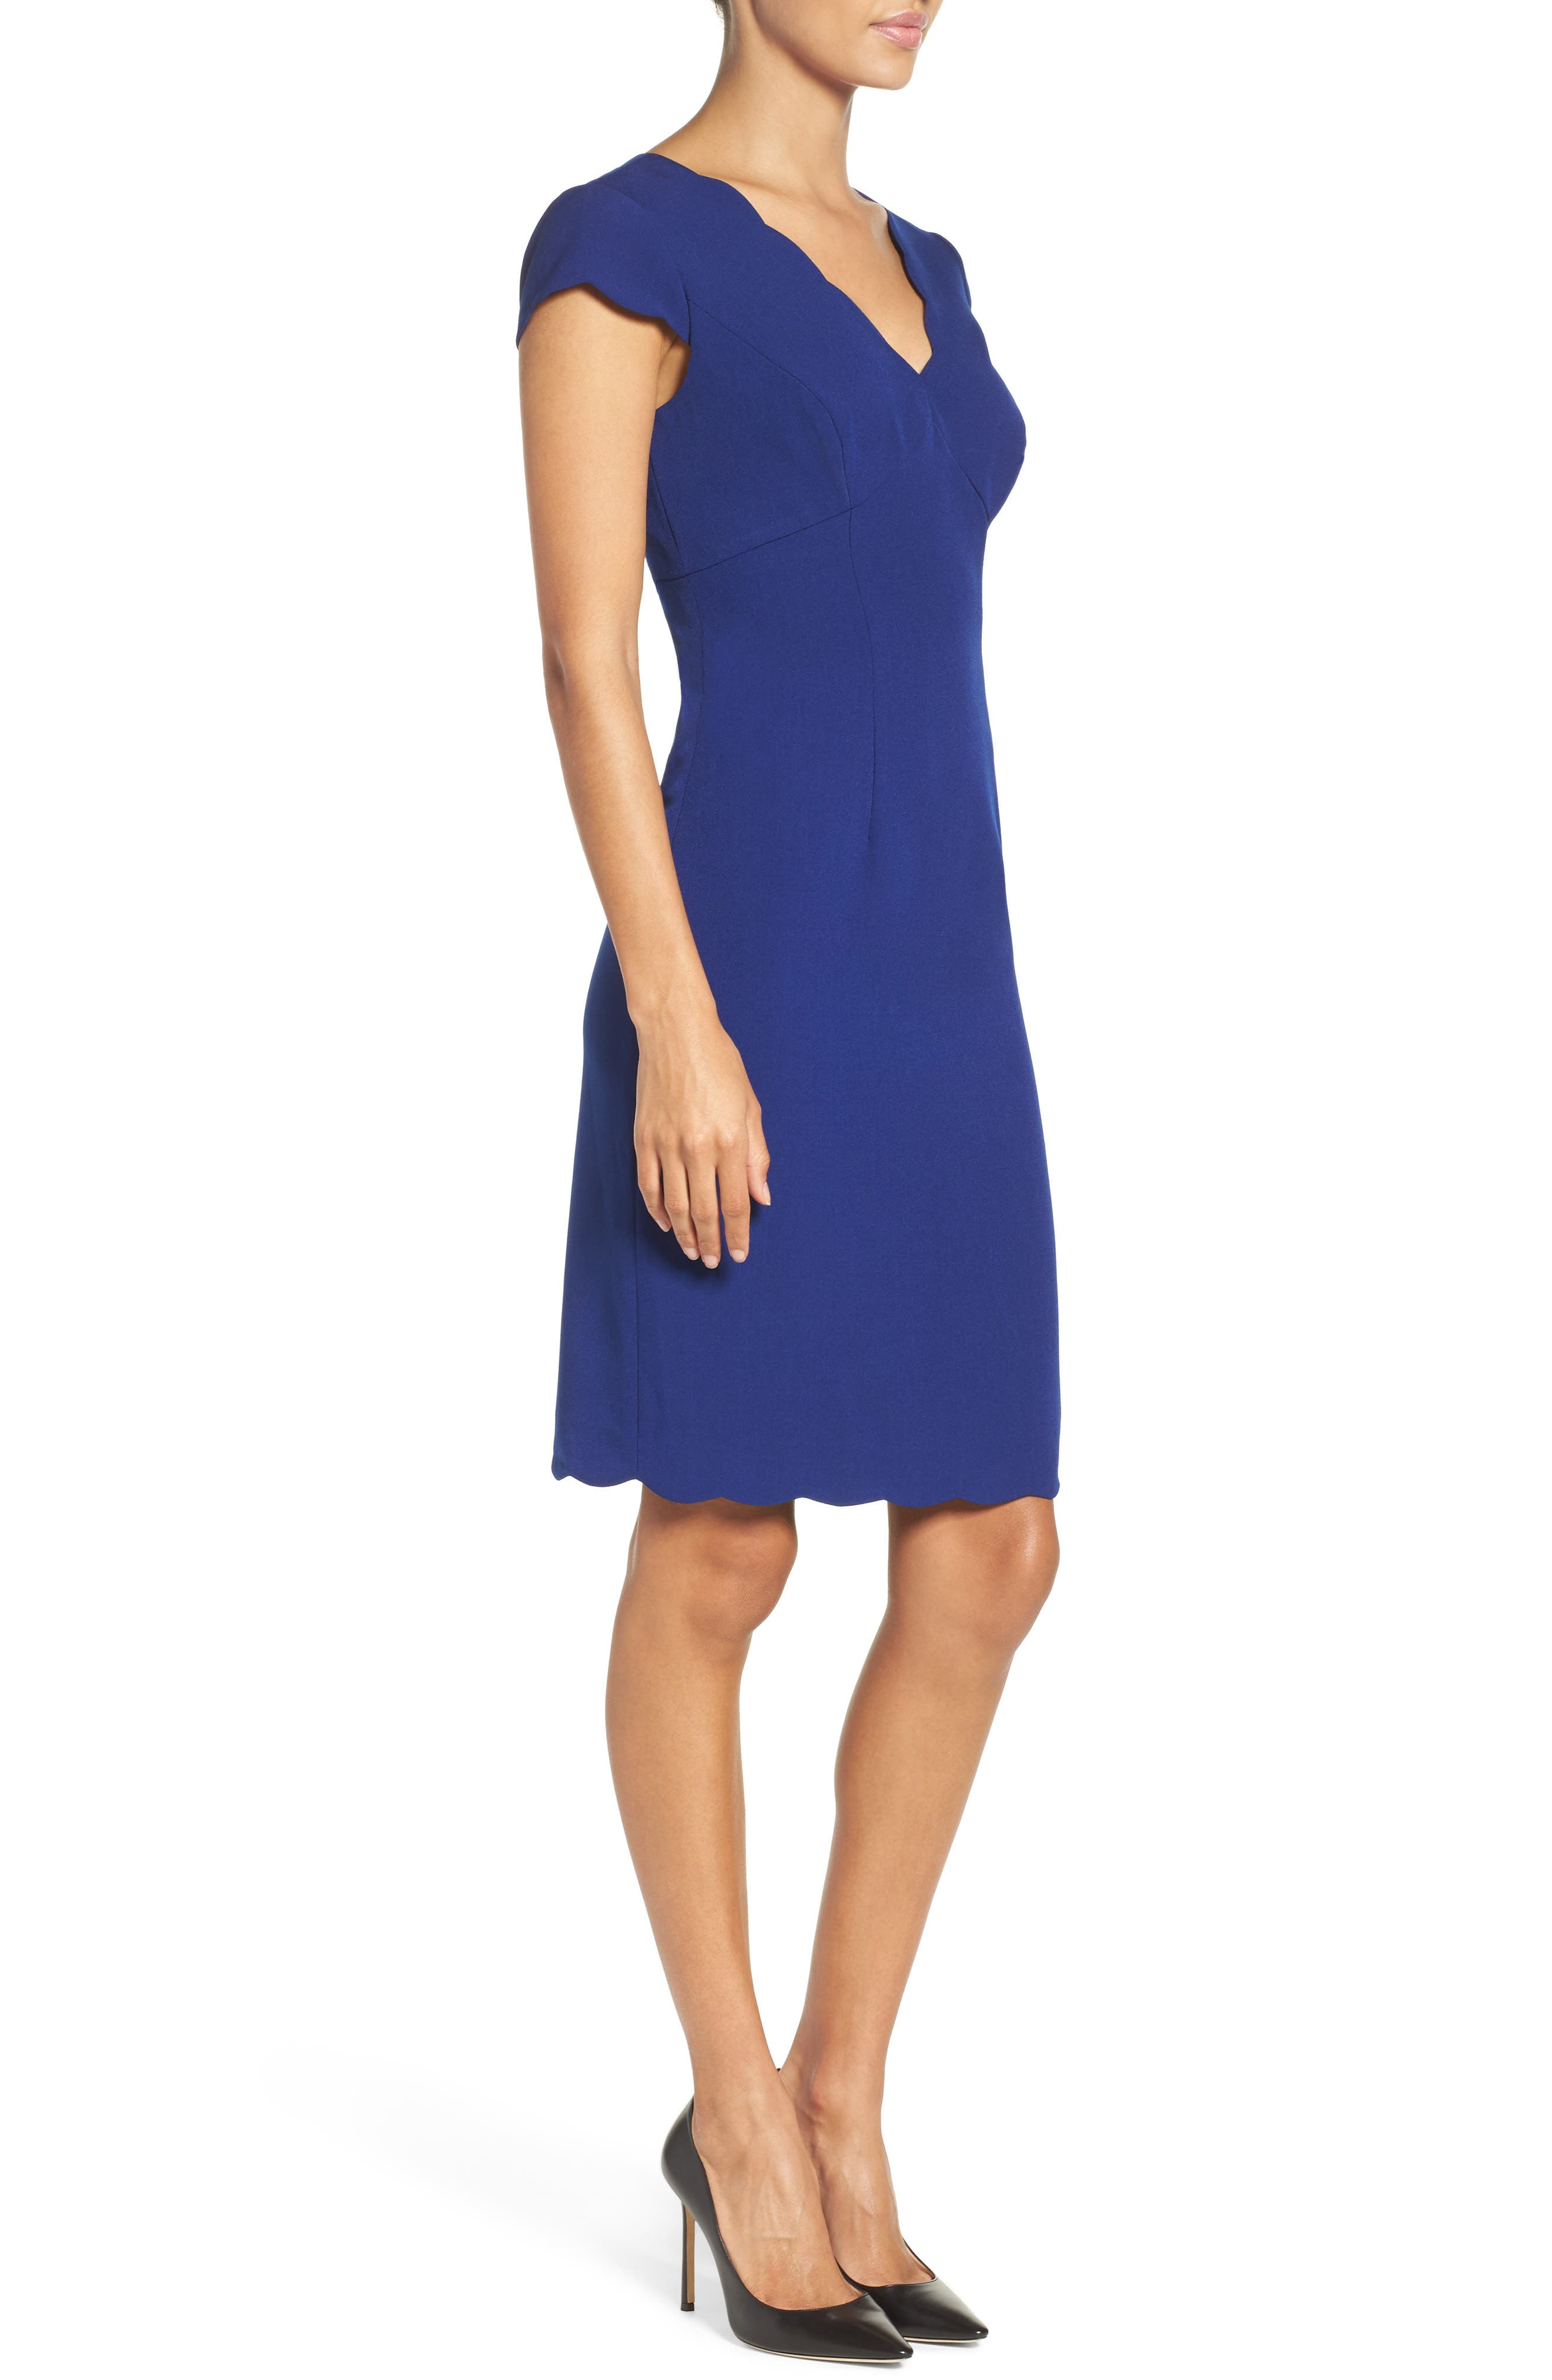 Alternate Image 3  - Adrianna Papell Scalloped Crepe Sheath Dress (Regular & Petite)